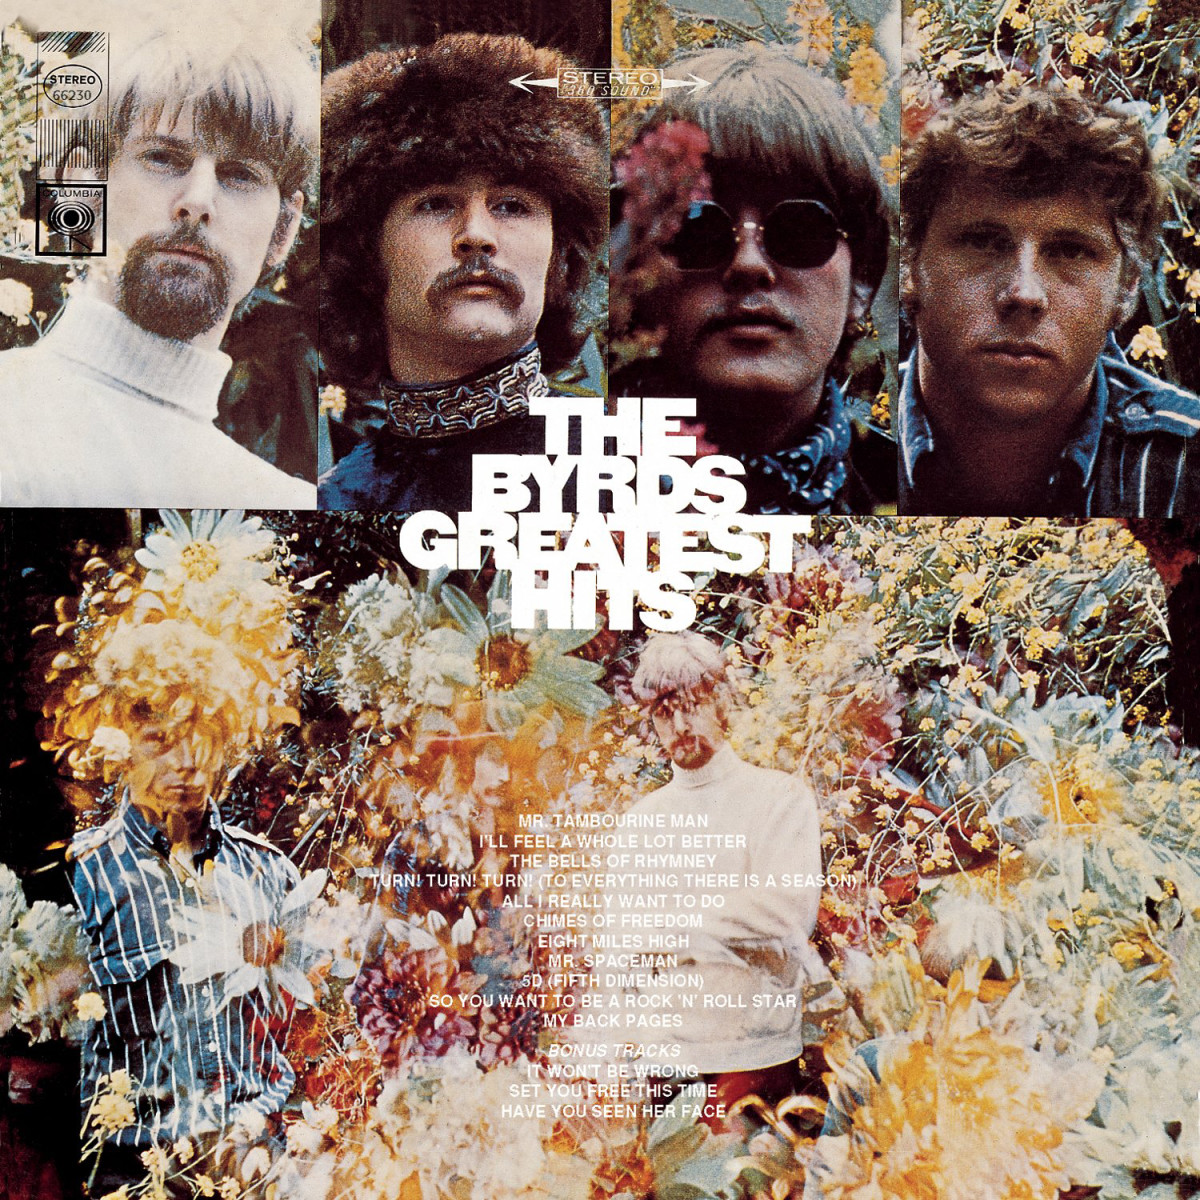 The Byrds, Greatest Hits